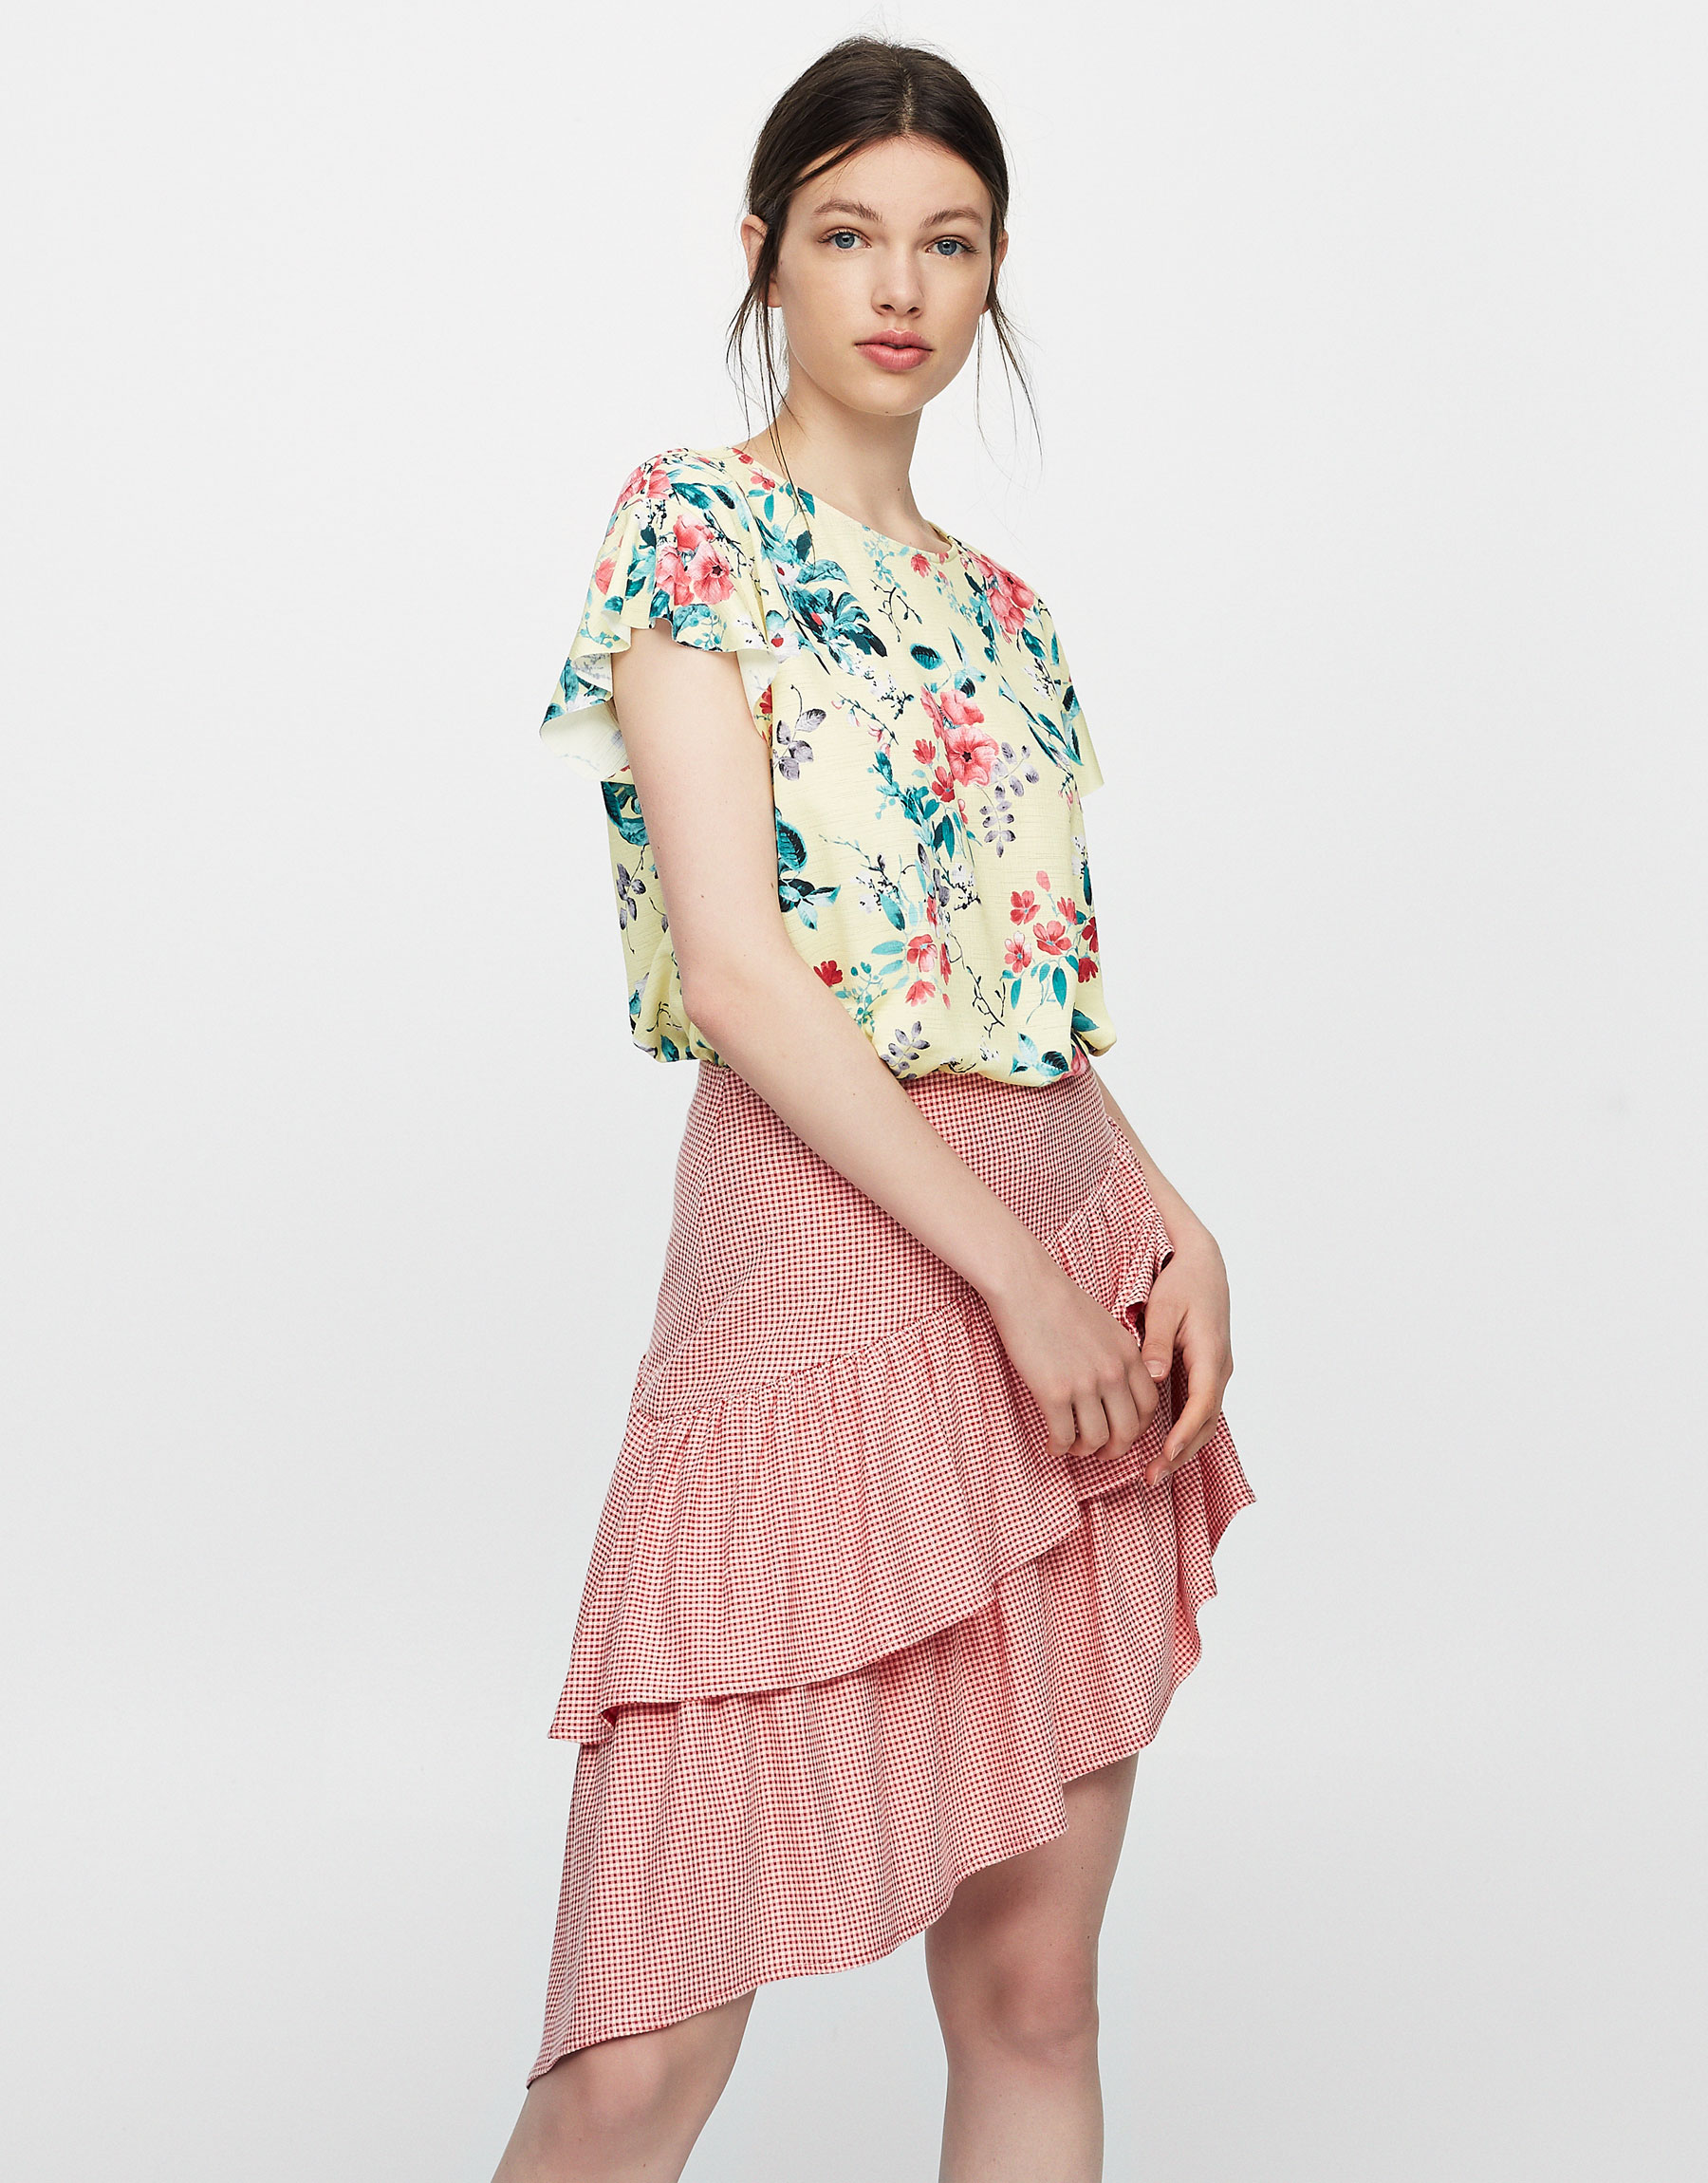 Floral top with ruffled sleeves